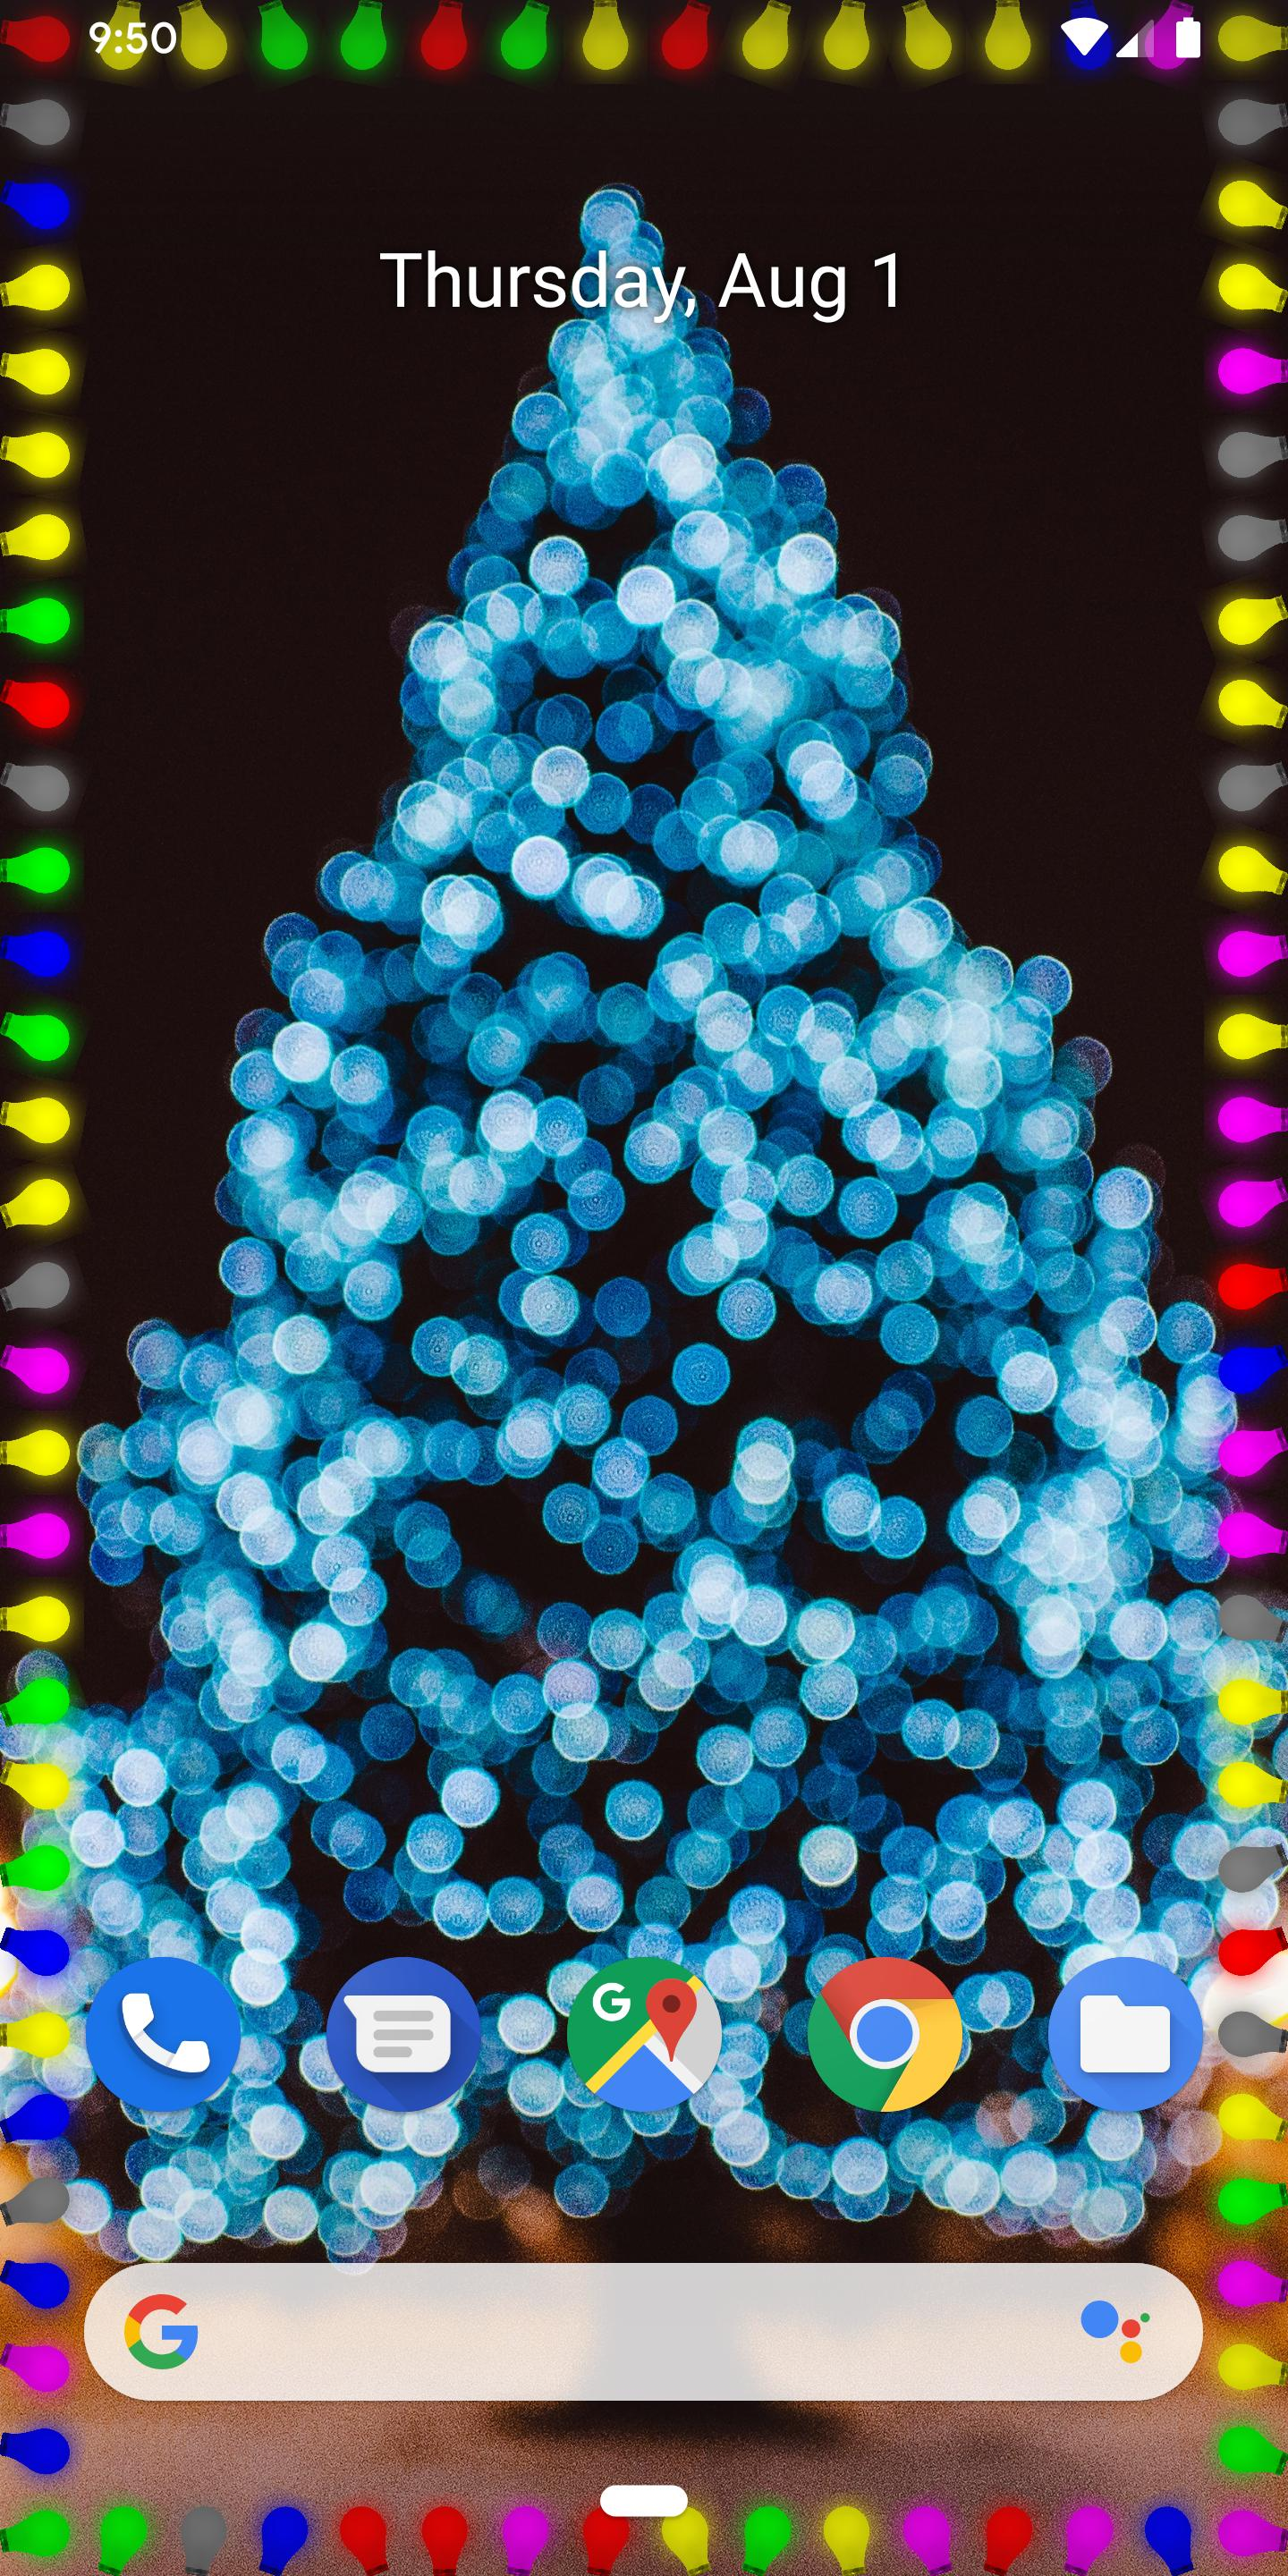 Xmas Edge Live Wallpaper Edge Lighting S10 Note9 For Android Apk Download